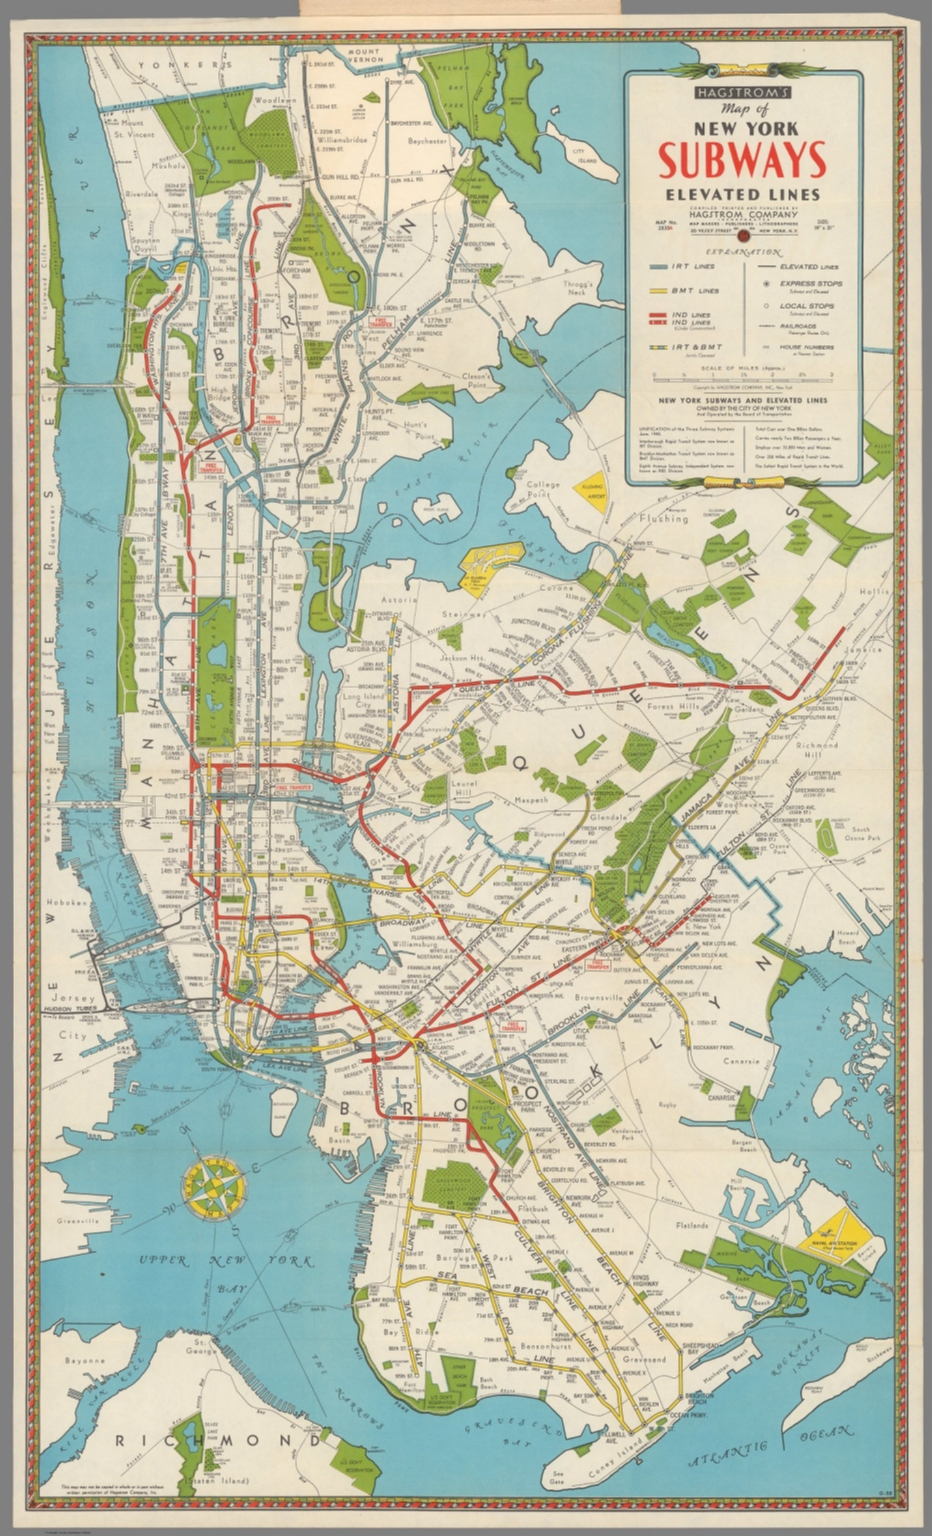 Hagstrom S Map Of New York Subways Elevated Lines David Rumsey Historical Map Collection